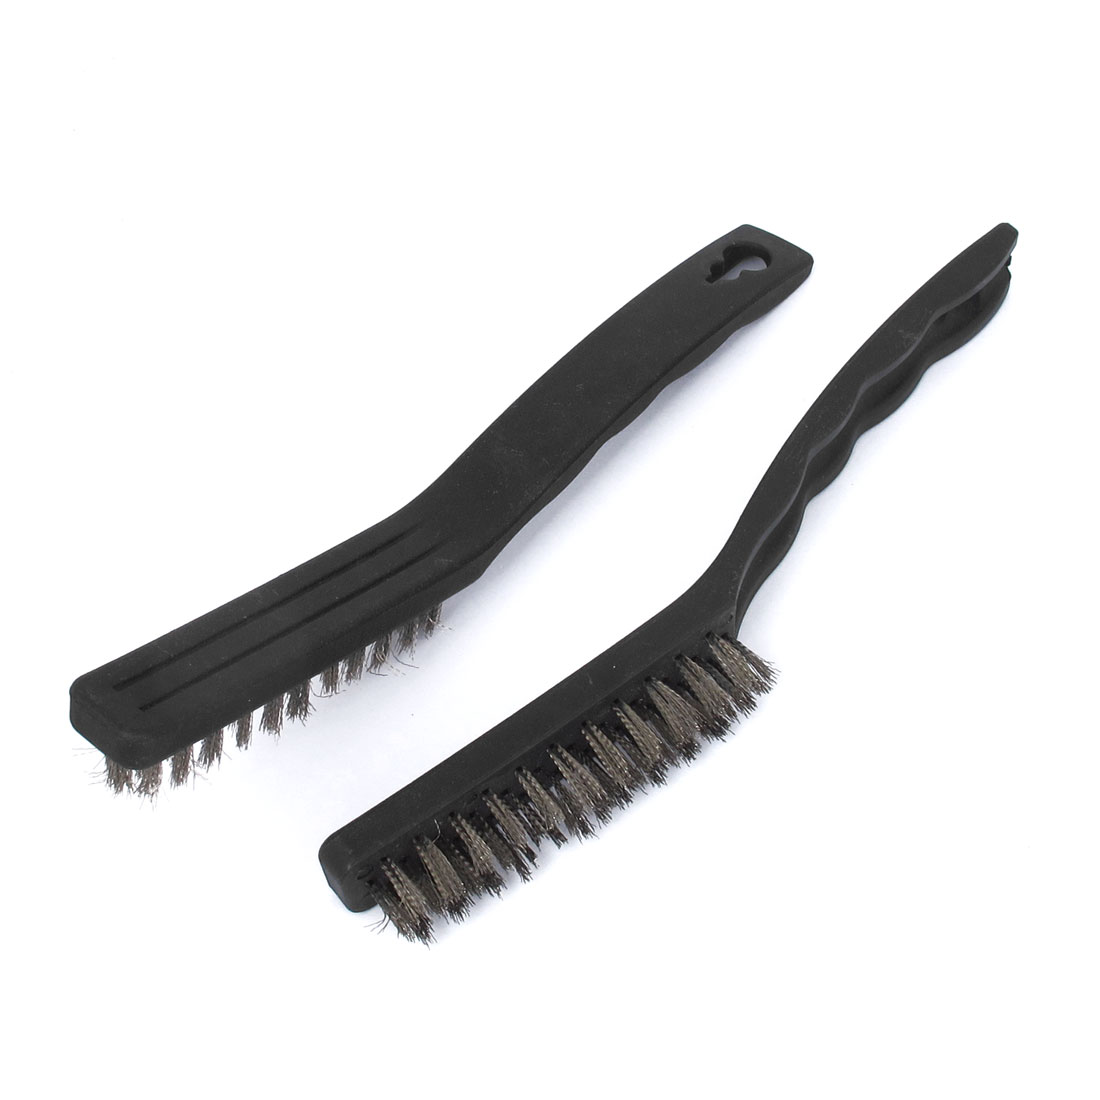 21.5cm Length Handy Tool Plastic Handle Steel Wire Cleaning Brush Black 2 Pcs